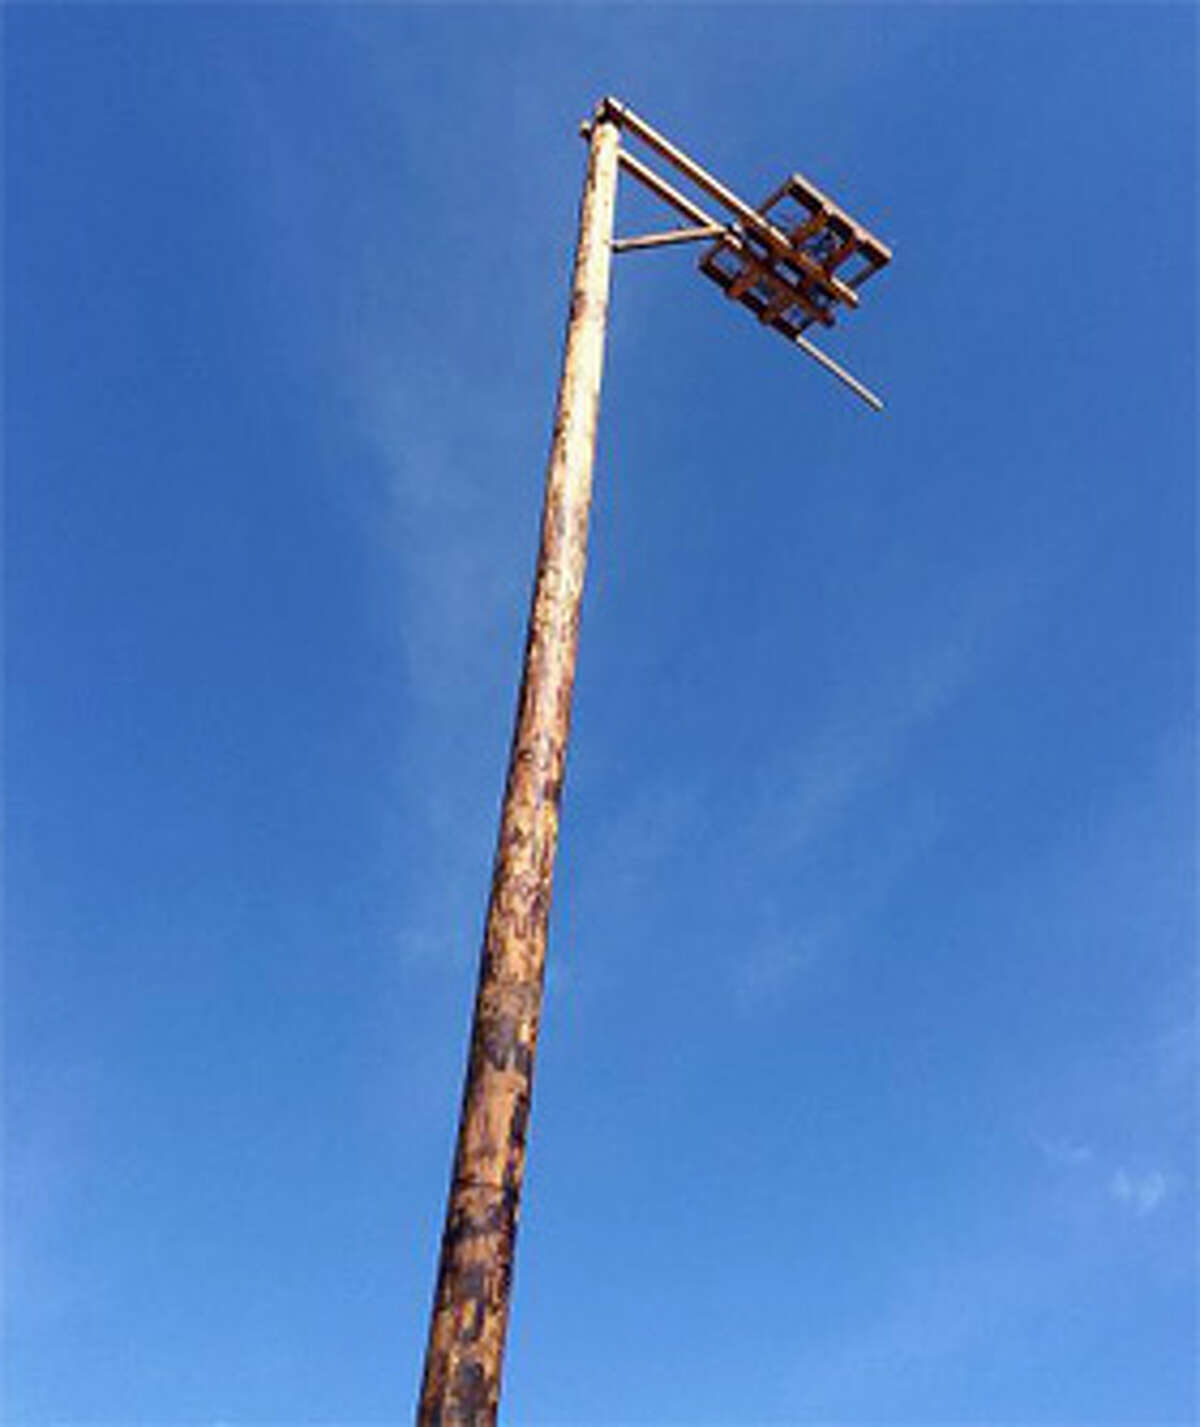 The osprey platform was installed on a 55-foot-tall pole that includes a 4-foot-long perch.